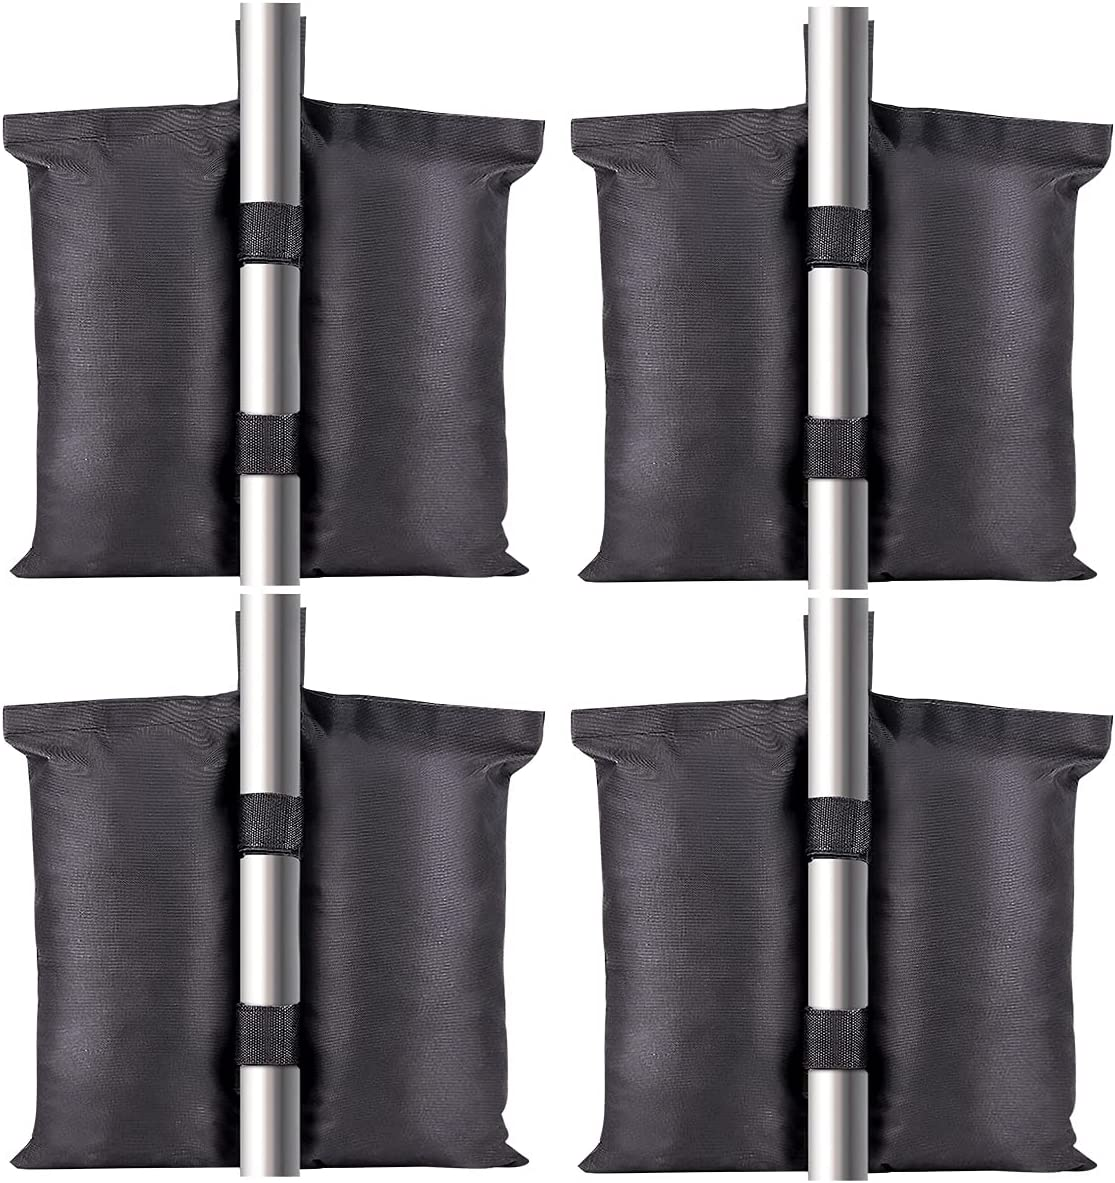 shiningwaner 120LBS Large Size Weight Sand Bags for Pop Up Tent, 4PCS Heavy Duty Canopy Tent Weights, Patio Outdoor Furniture Weights Bags for Umbrella Sun Shelter Pool Ladder, Black